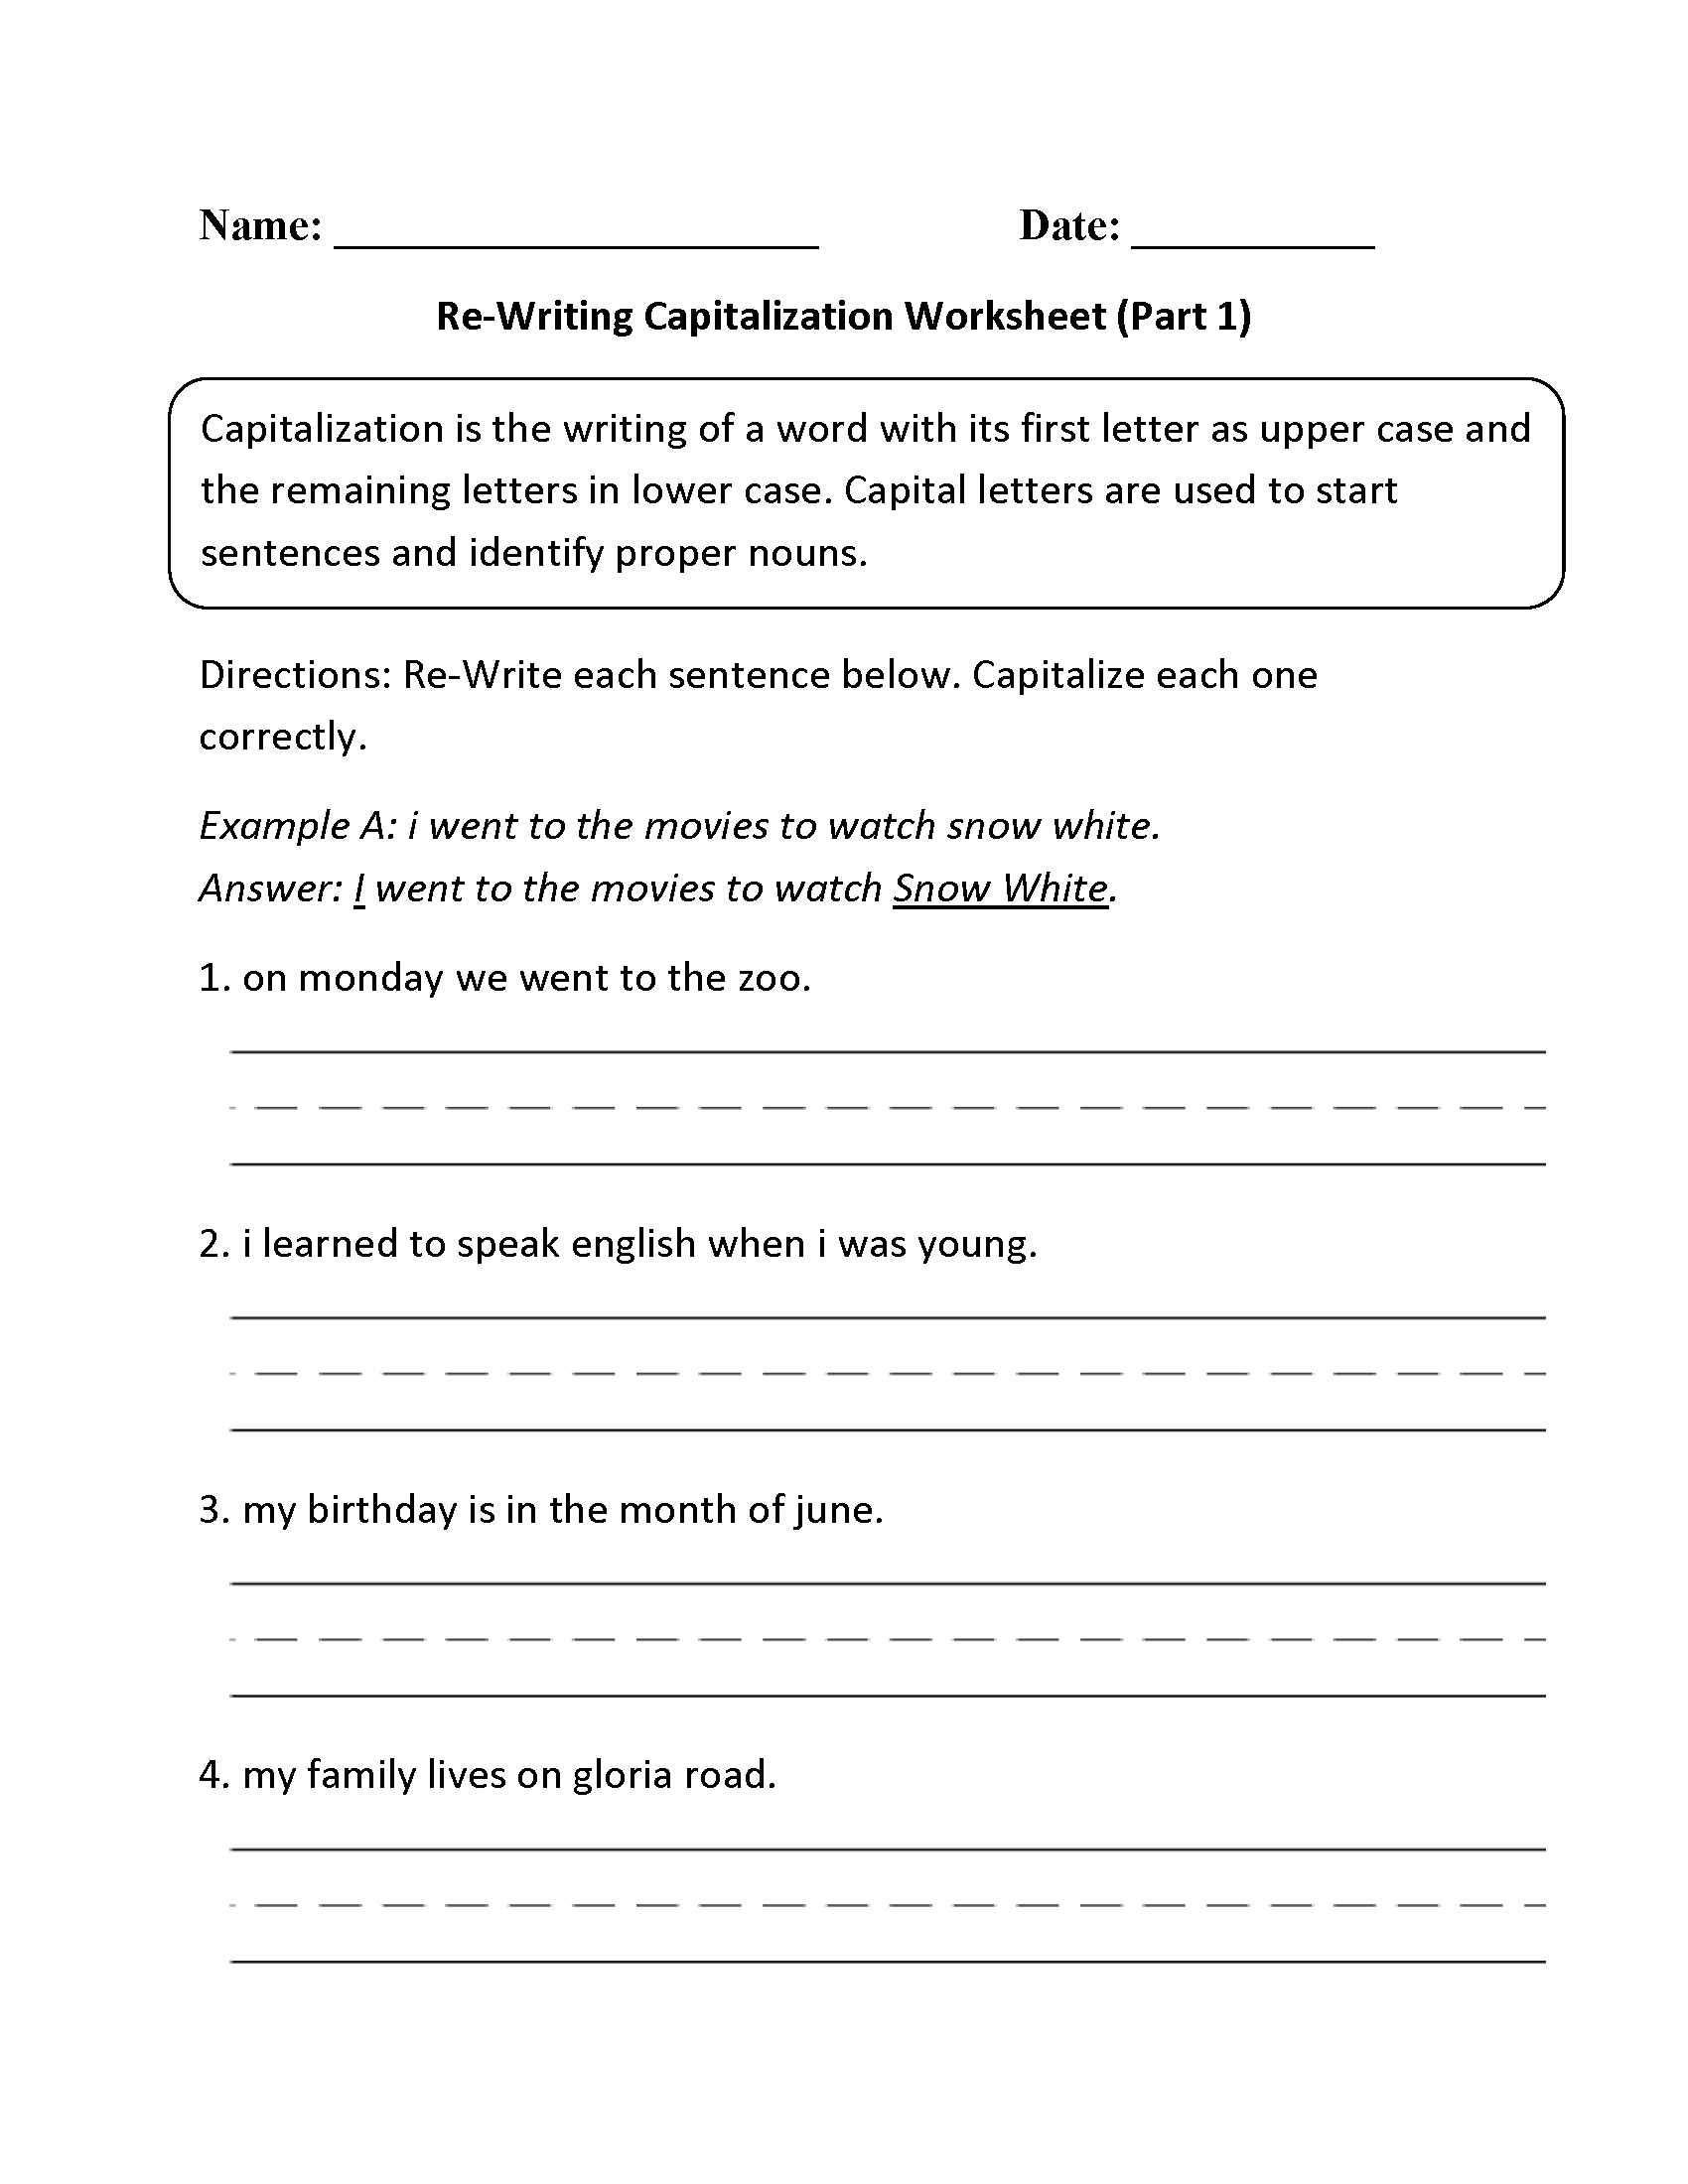 Worksheets Free Printable Capitalization Worksheets englishlinx com capitalization worksheets re writing worksheet part 1